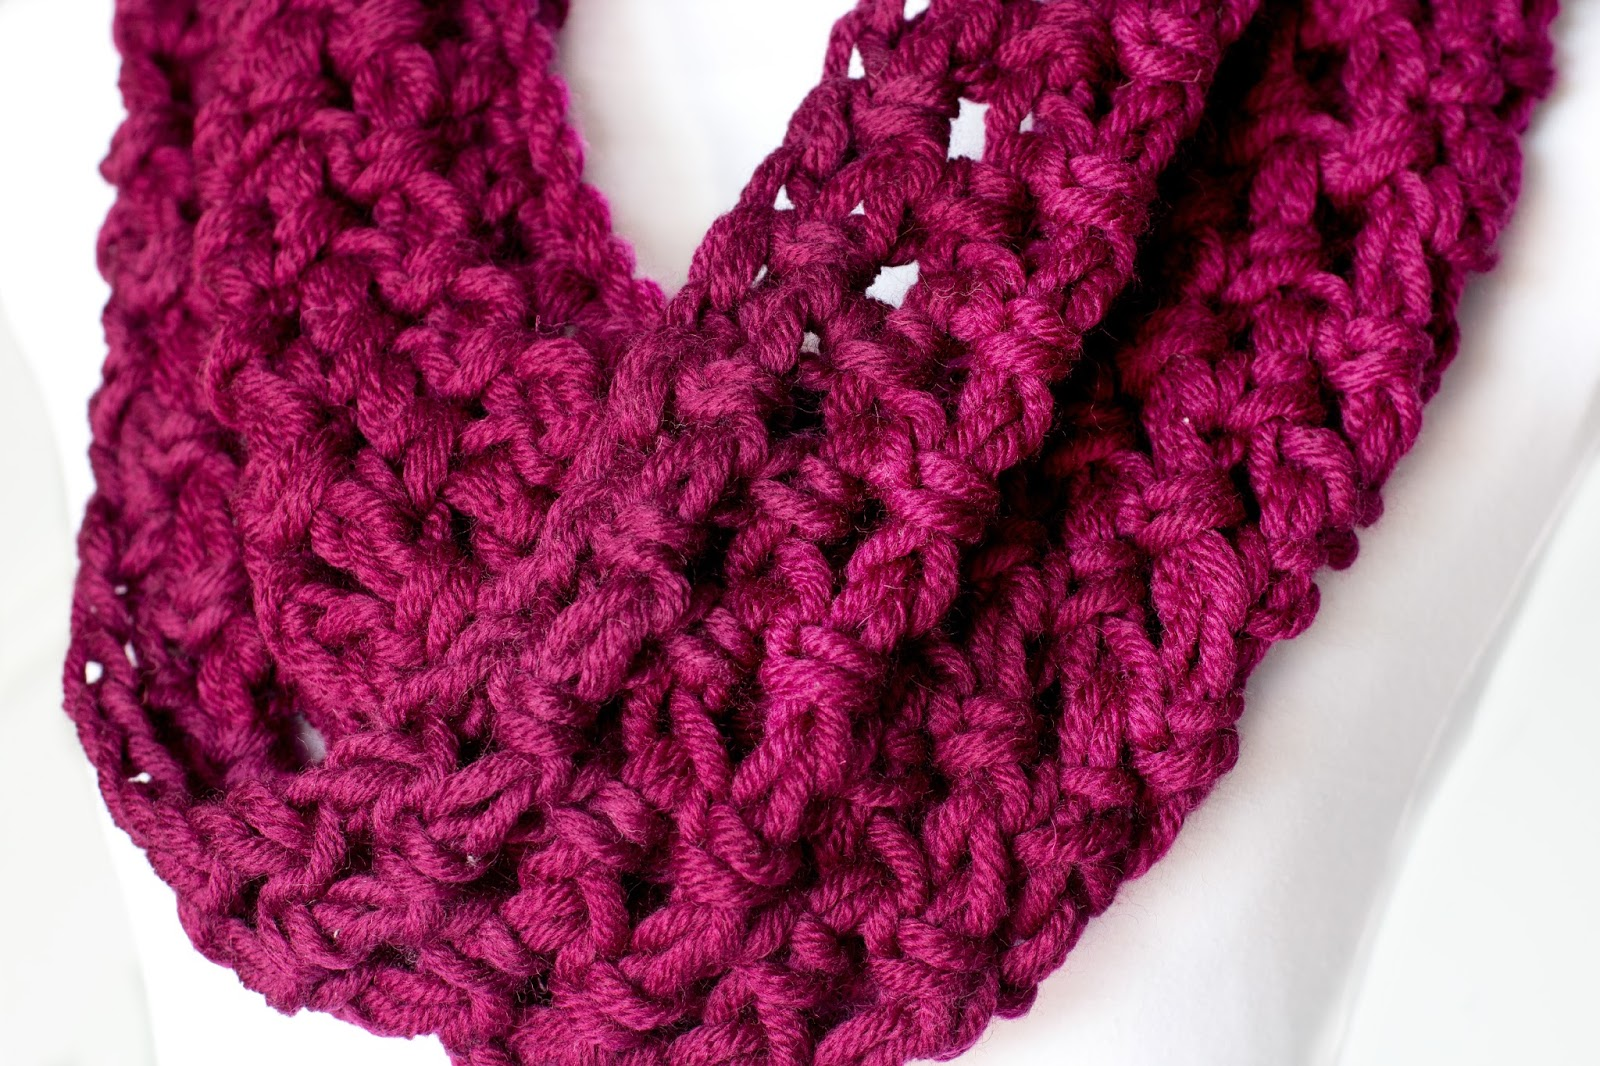 Crochet Patterns And Yarn : ... Honey Craft, Crochet, Create: Basic Chunky Cowl Crochet Pattern